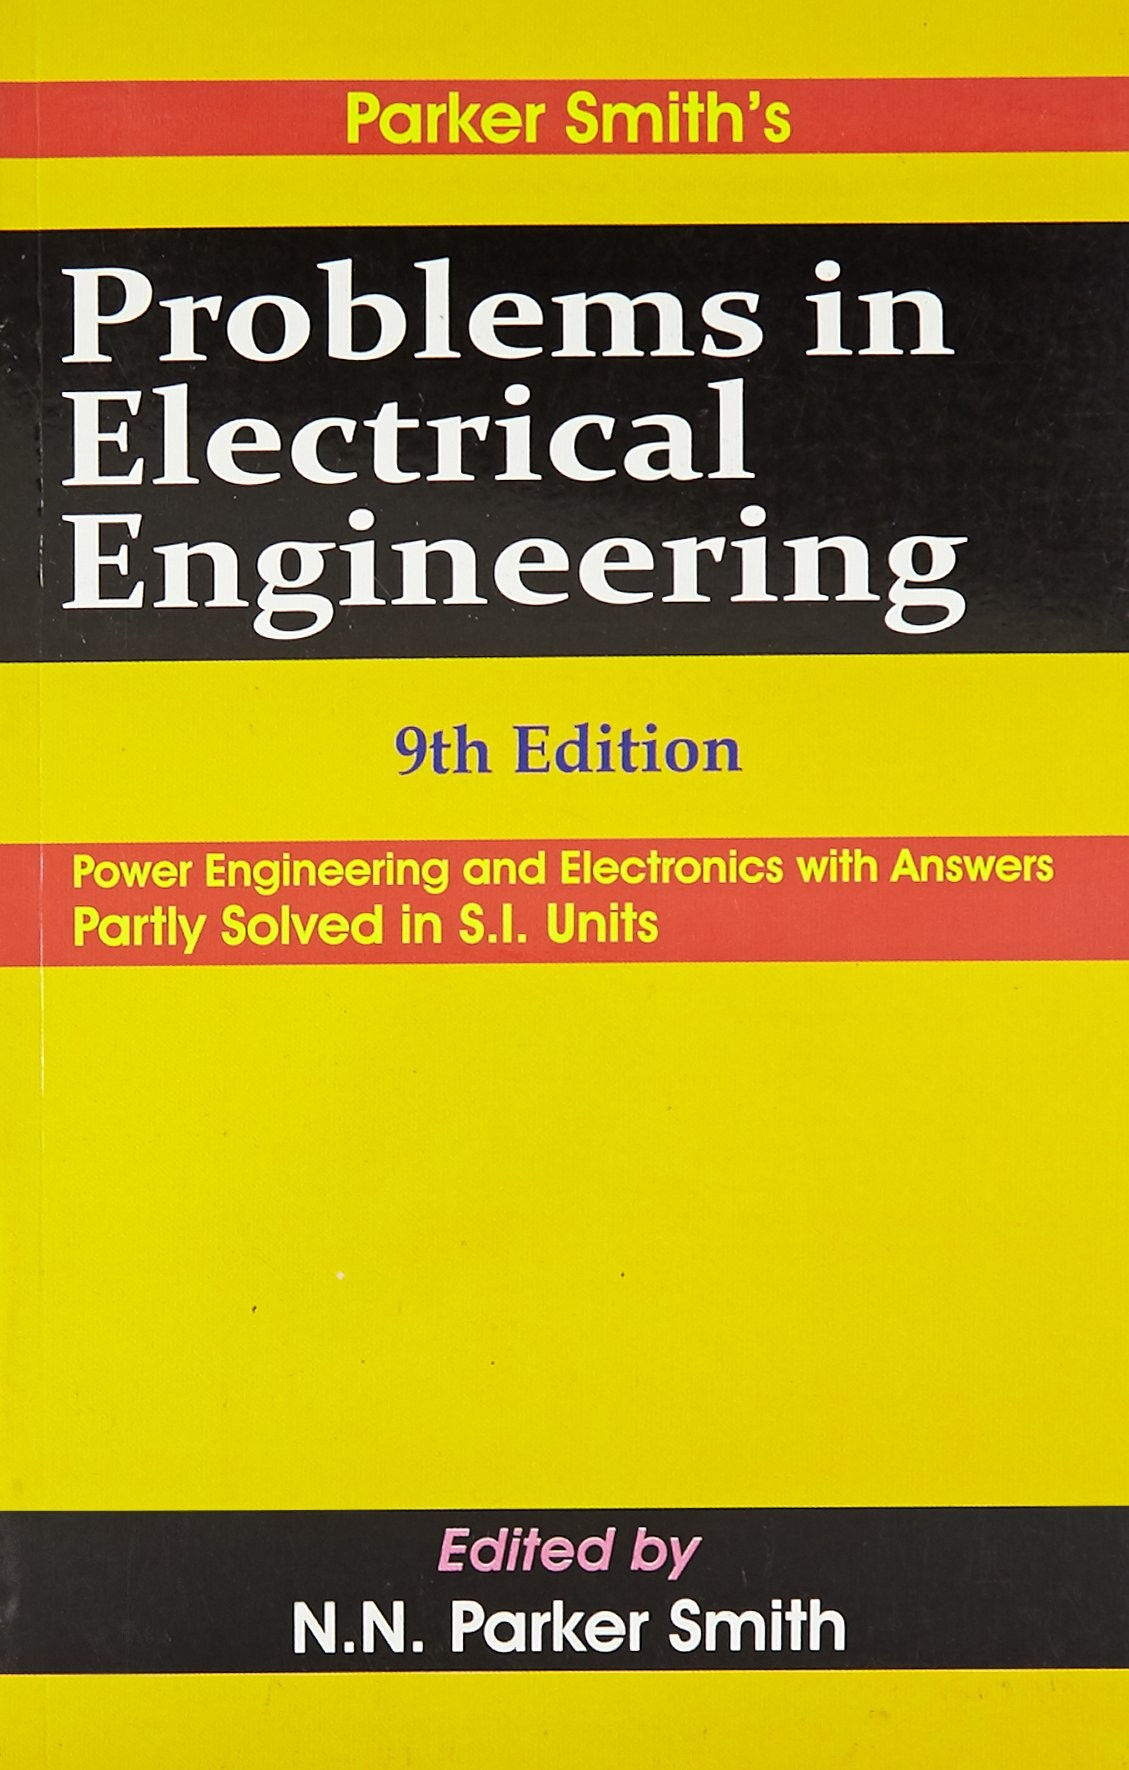 Problems In Electrical Engineering 9Ed (Pb 2003)